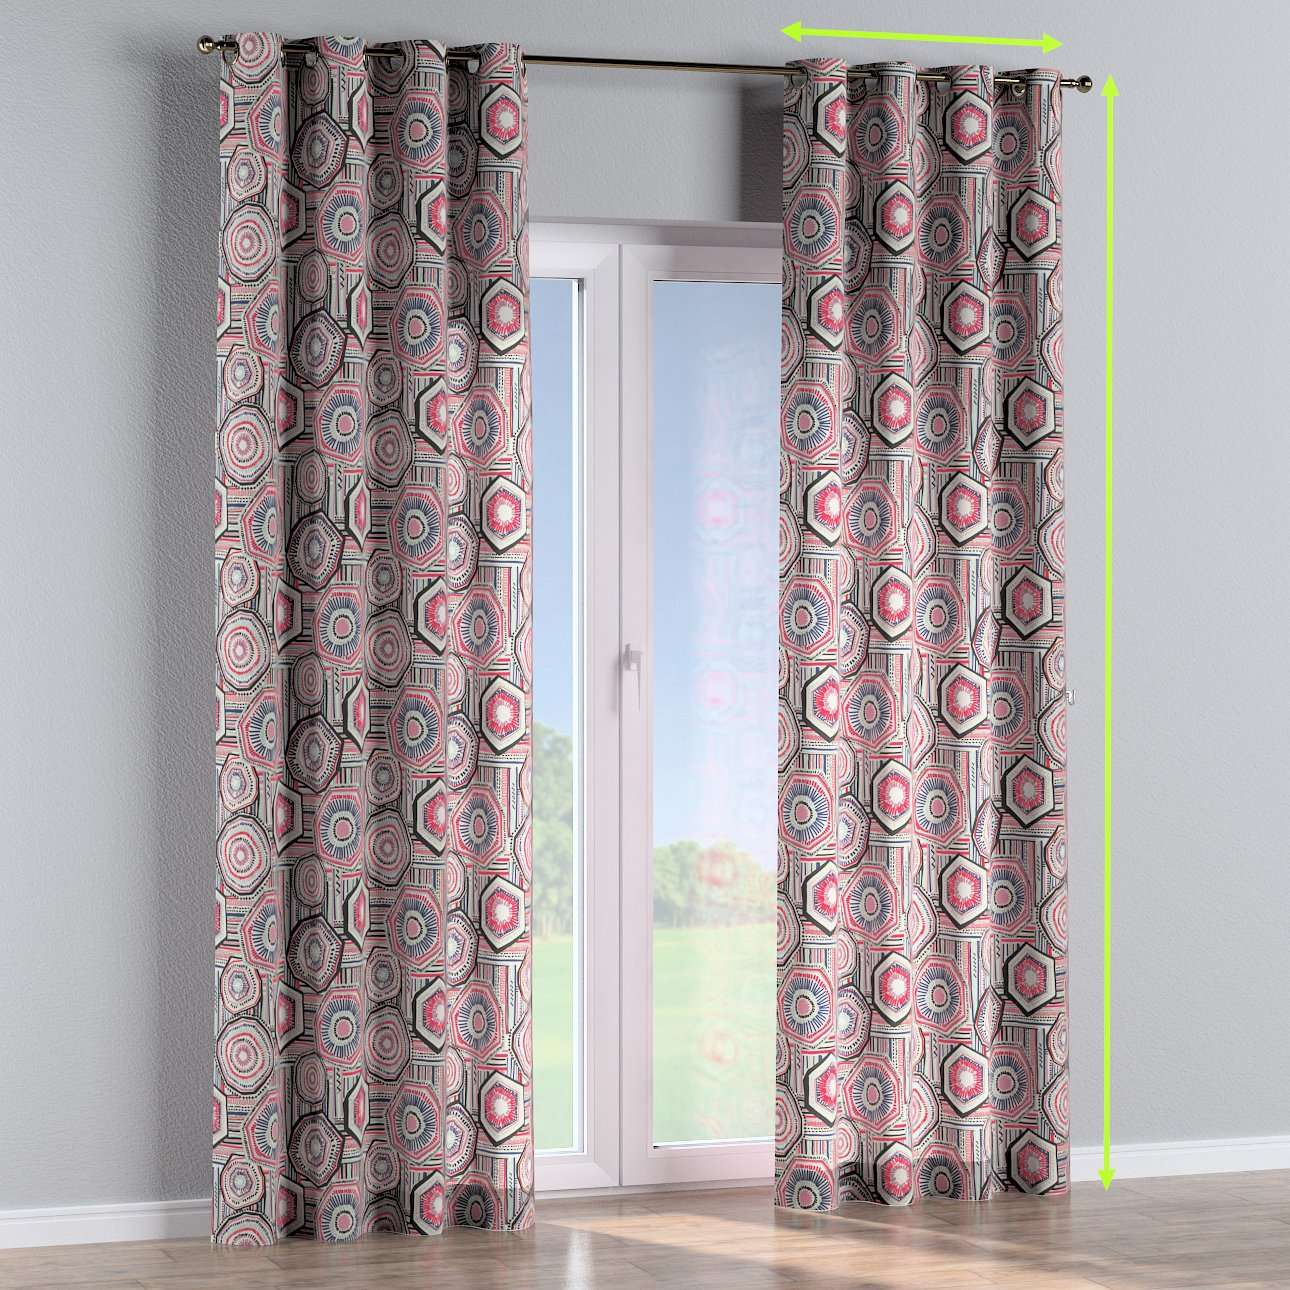 Eyelet curtains in collection New Art, fabric: 141-54